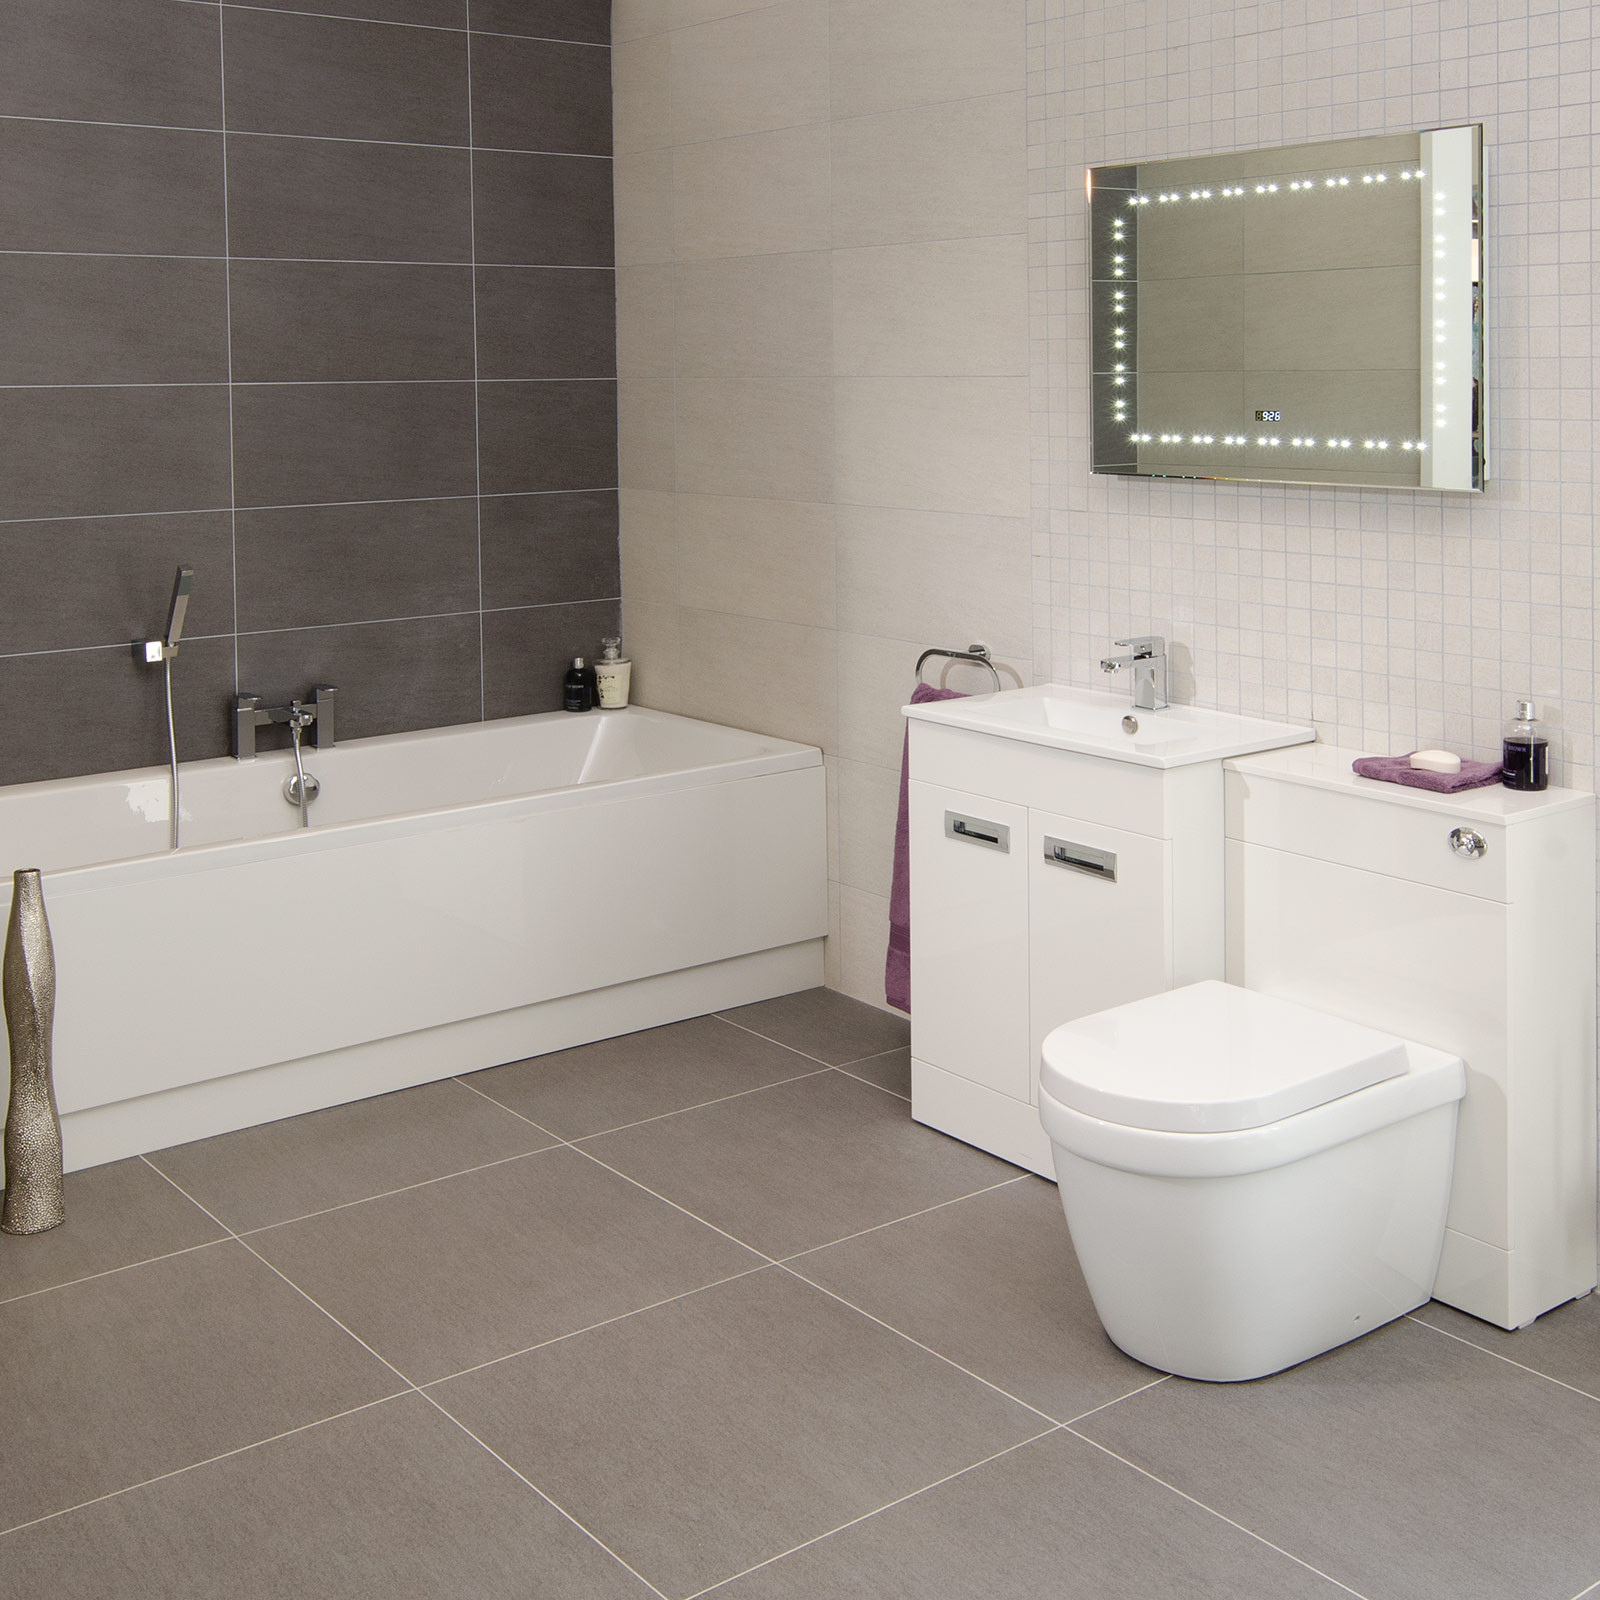 Wall Tile For Bathrooms: Quattro Silver Wall/Floor Tile